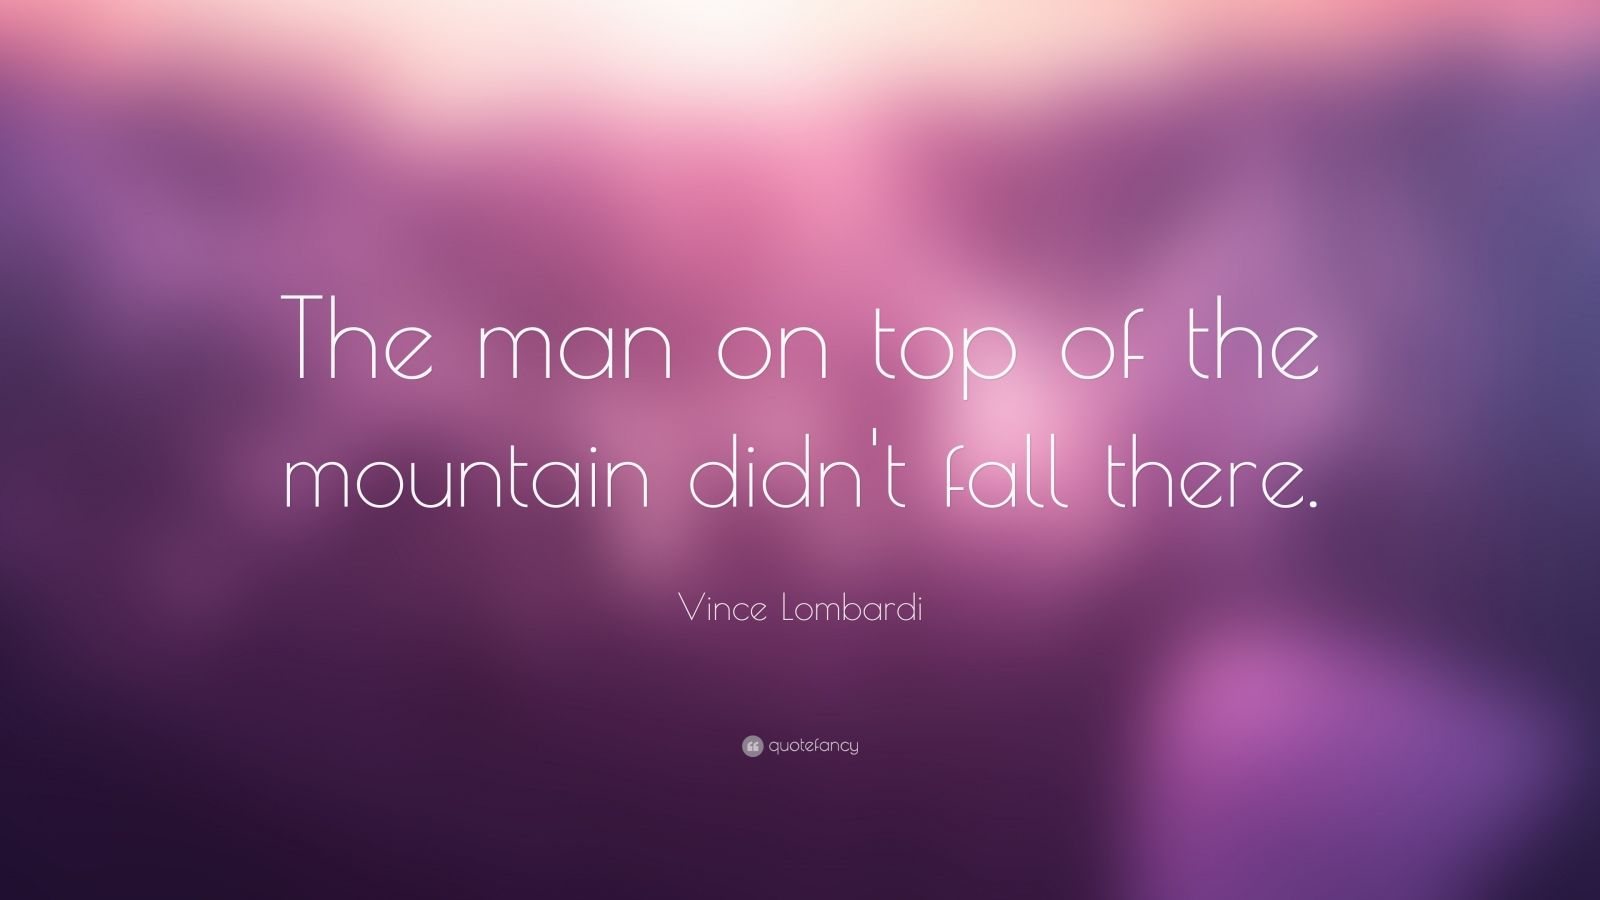 Wallpaper Hello Fall Vince Lombardi Quote The Man On Top Of The Mountain Didn